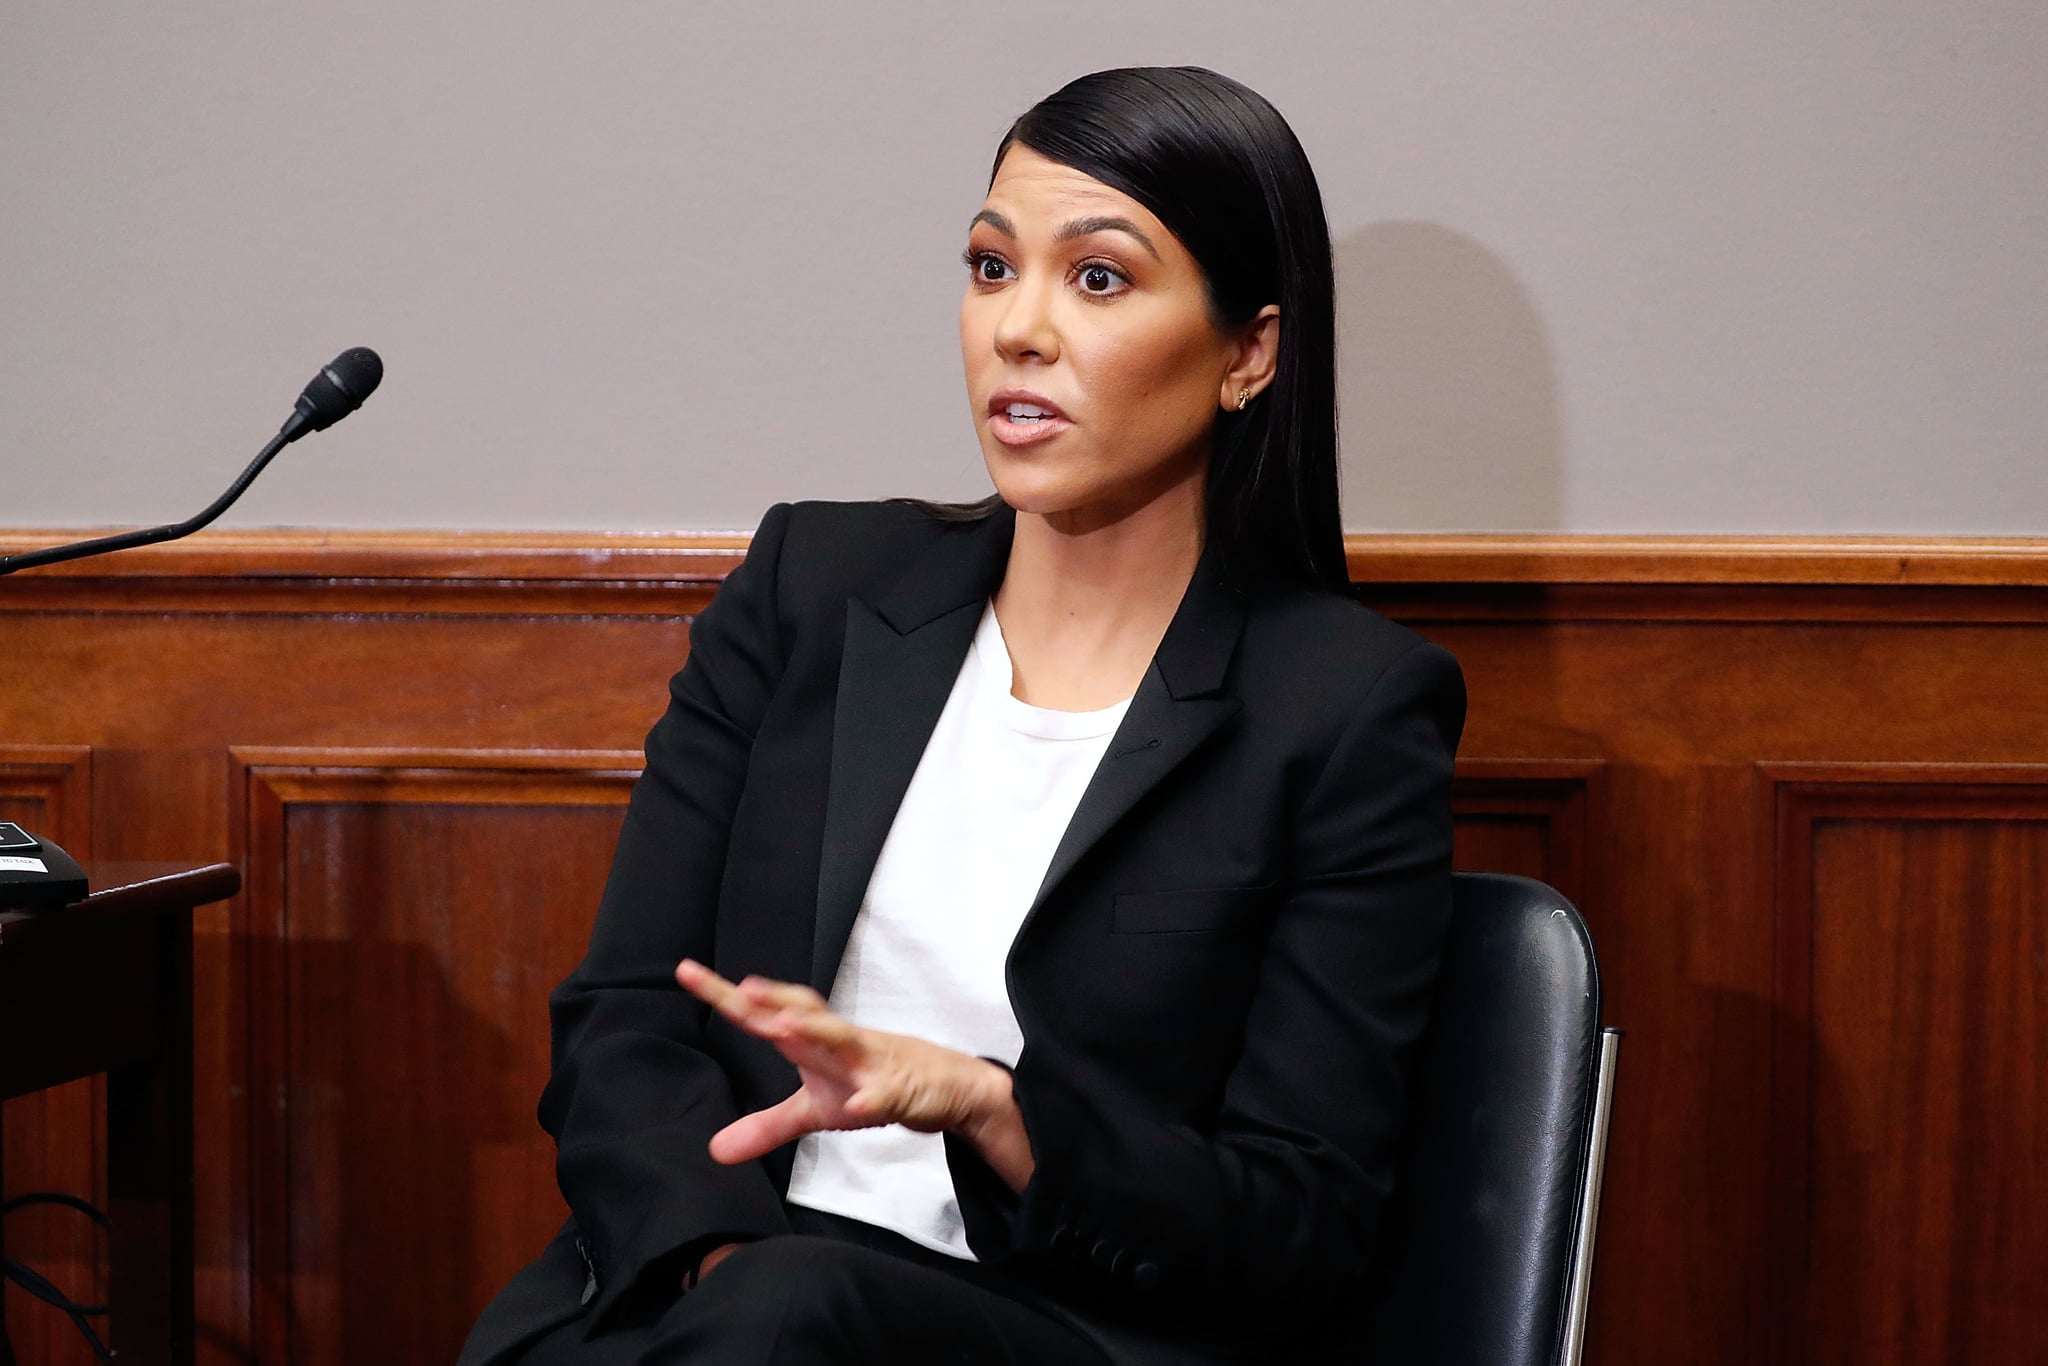 WASHINGTON, DC - APRIL 24:  Reality TV-Star Kourtney Kardashian speaks at a briefing in support of bipartisan personal care products legislation aimed at reforming how the FDA regulates the personal care products industry in the Russell Senate Office Building on April 24, 2018 in Washington, DC. Kourtney Kardashian and her sister Kylie Jenner launch their Kourt x Kylie makeup collection on April 24.  (Photo by Paul Morigi/Getty Images)